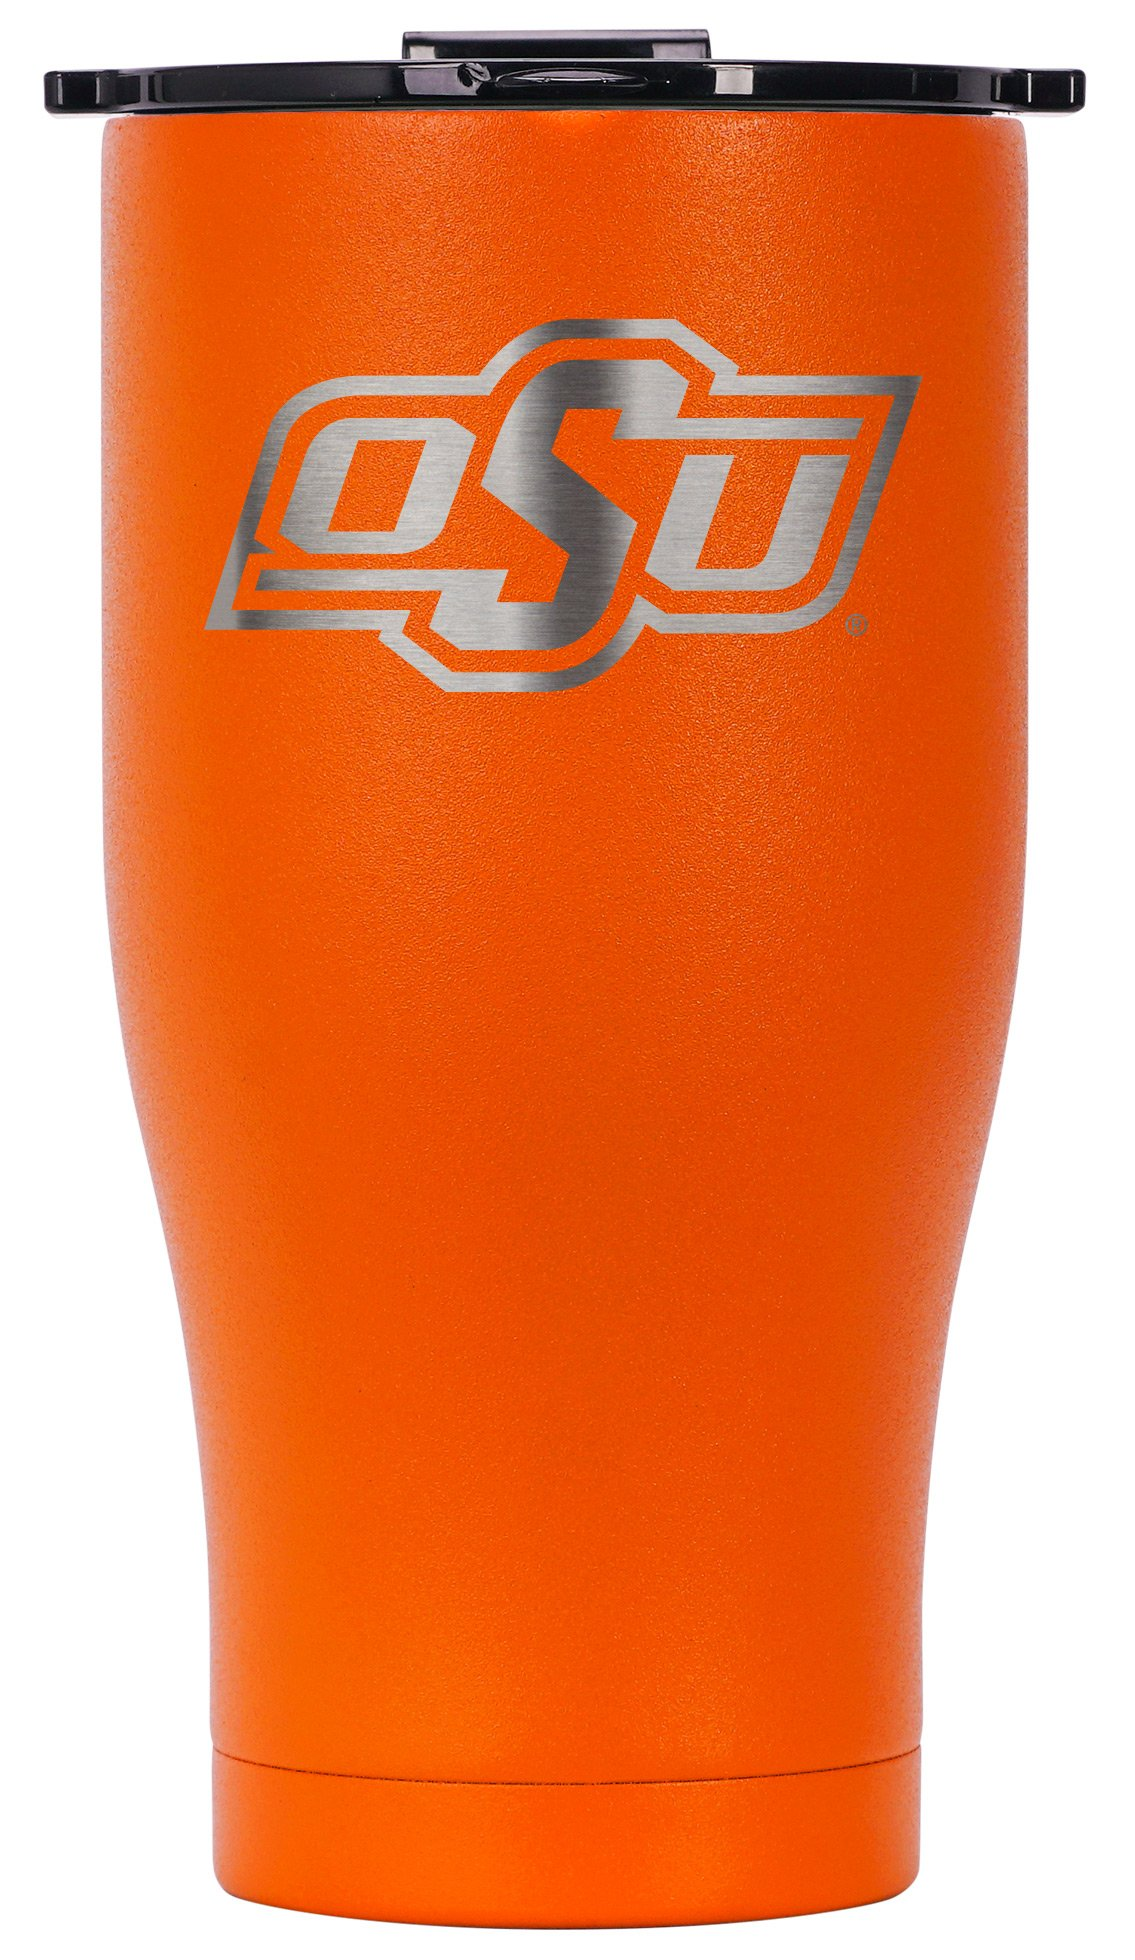 ORCA Chaser Laser Etched Oklahoma State Cooler, Orange, 27 oz by ORCA